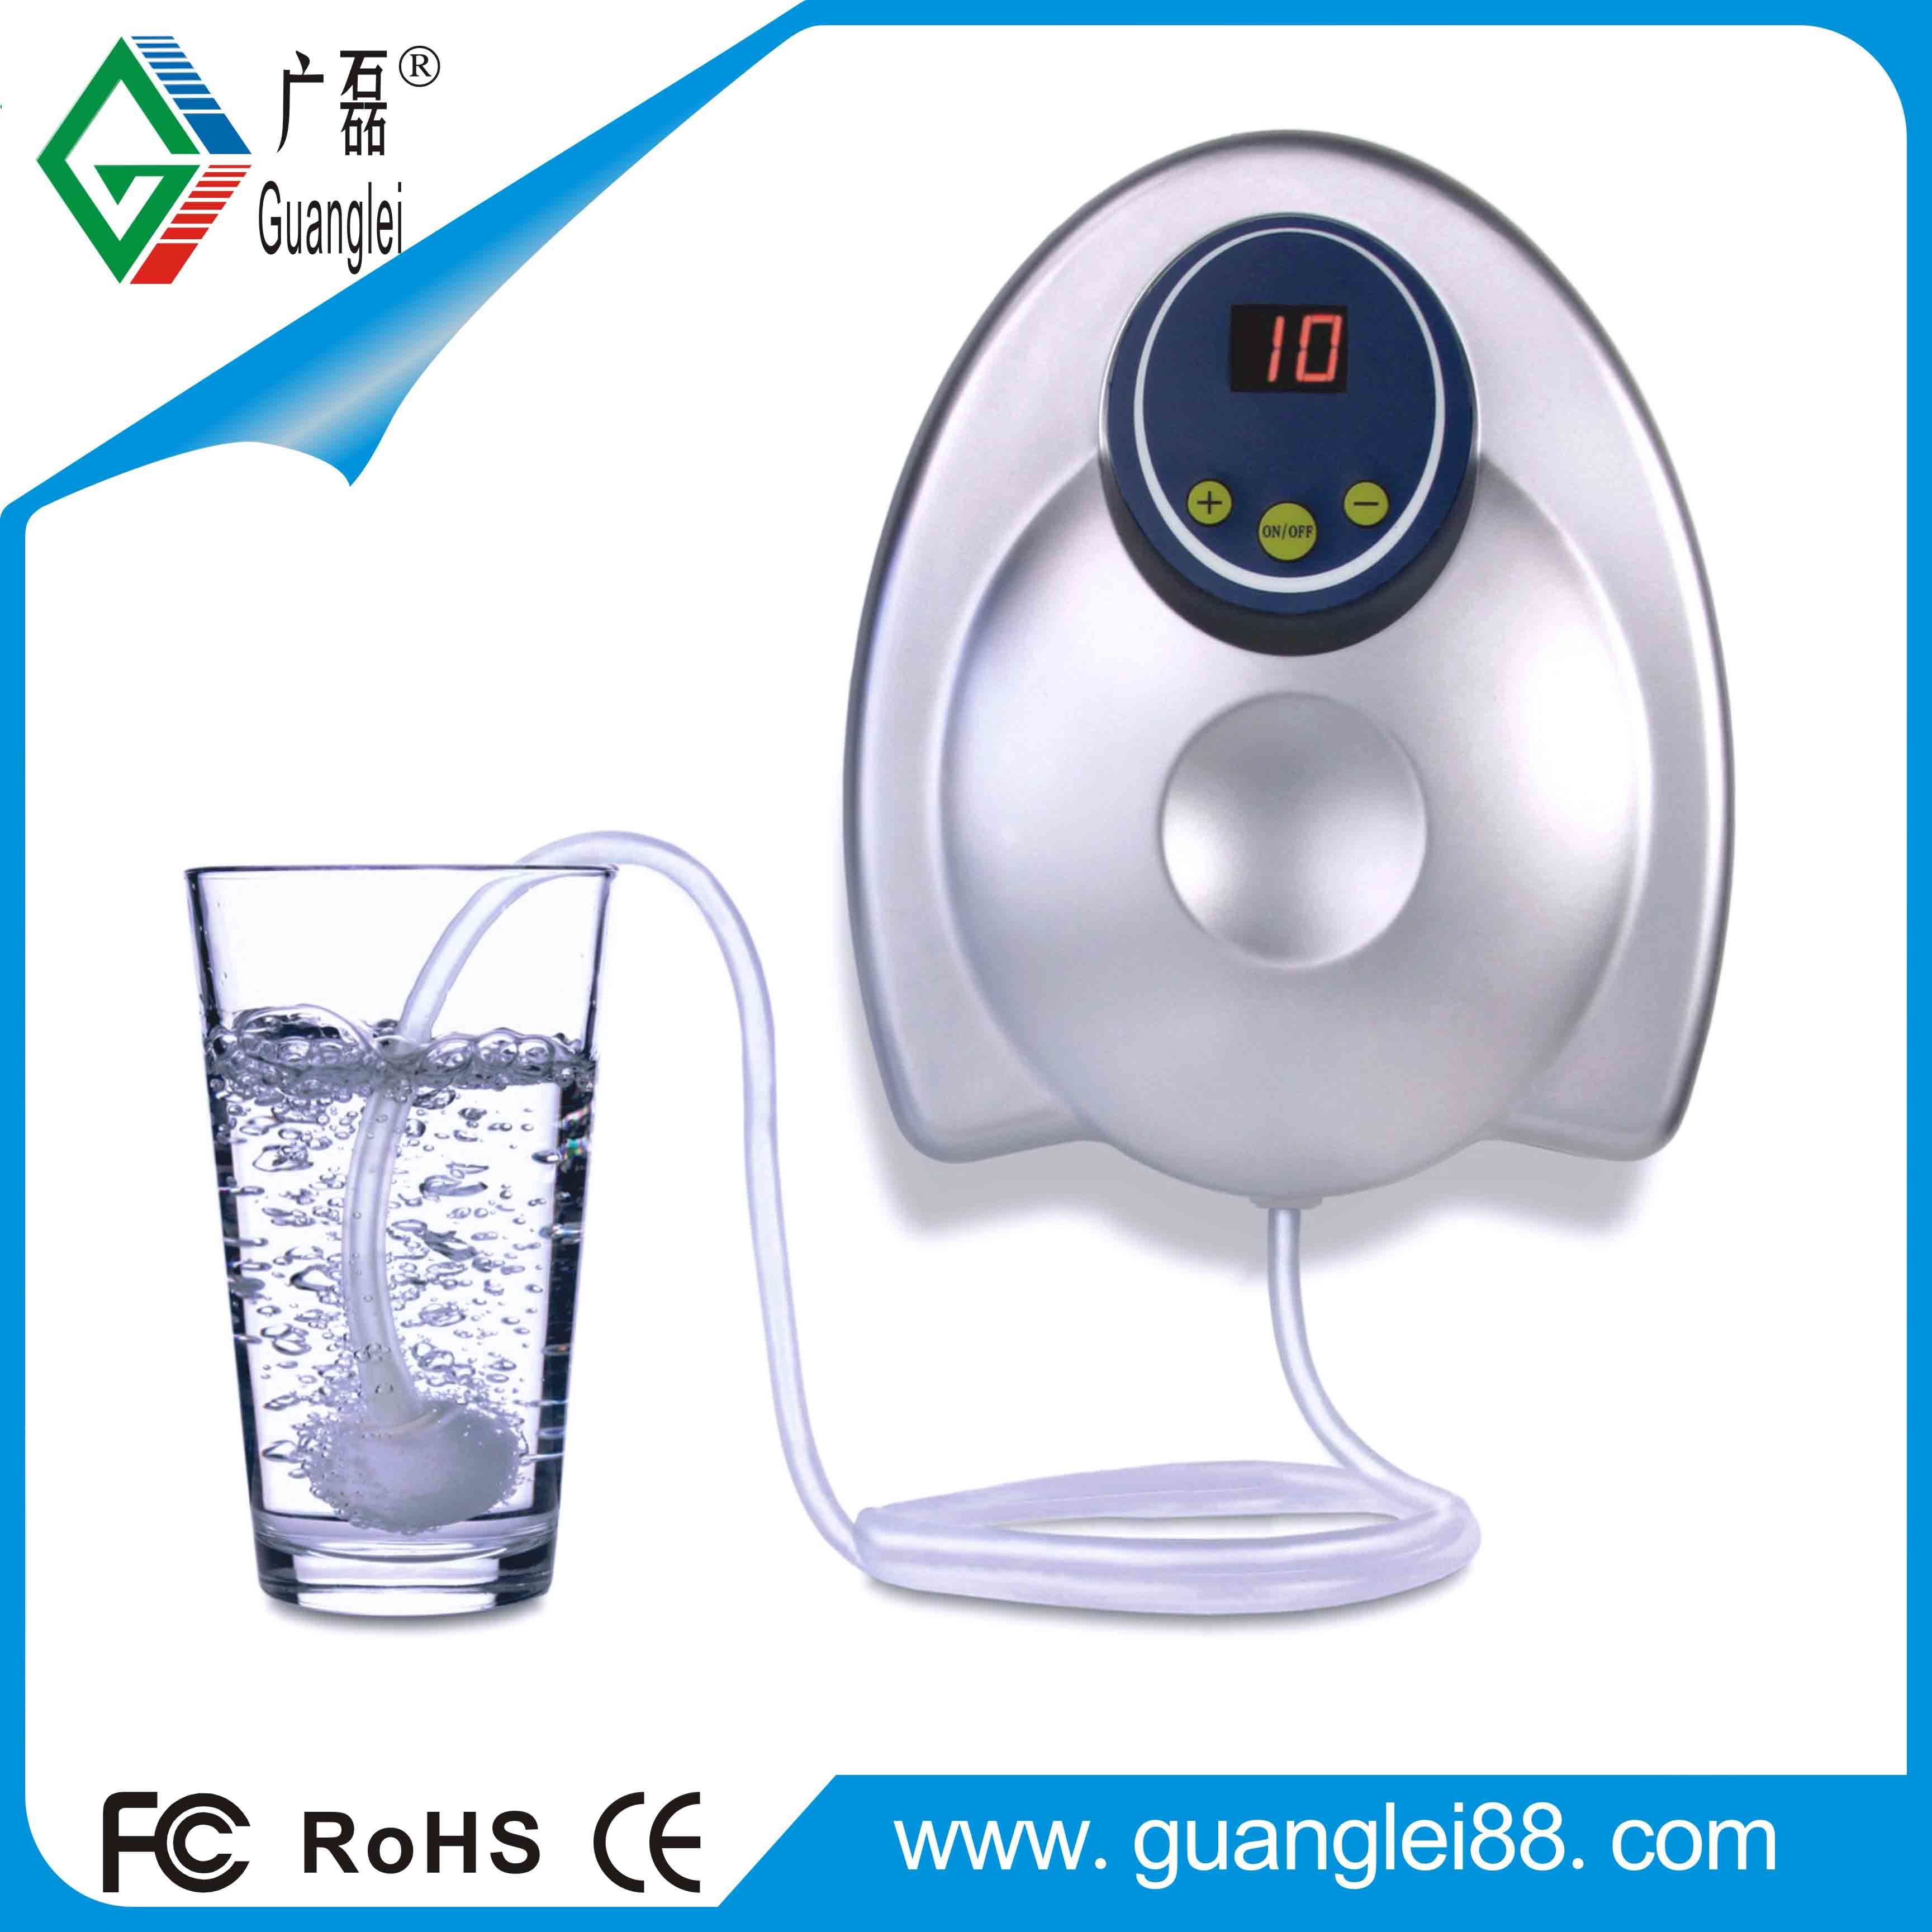 Portable Ozone Generator Water Ozonizer (GL-3188) pictures & photos